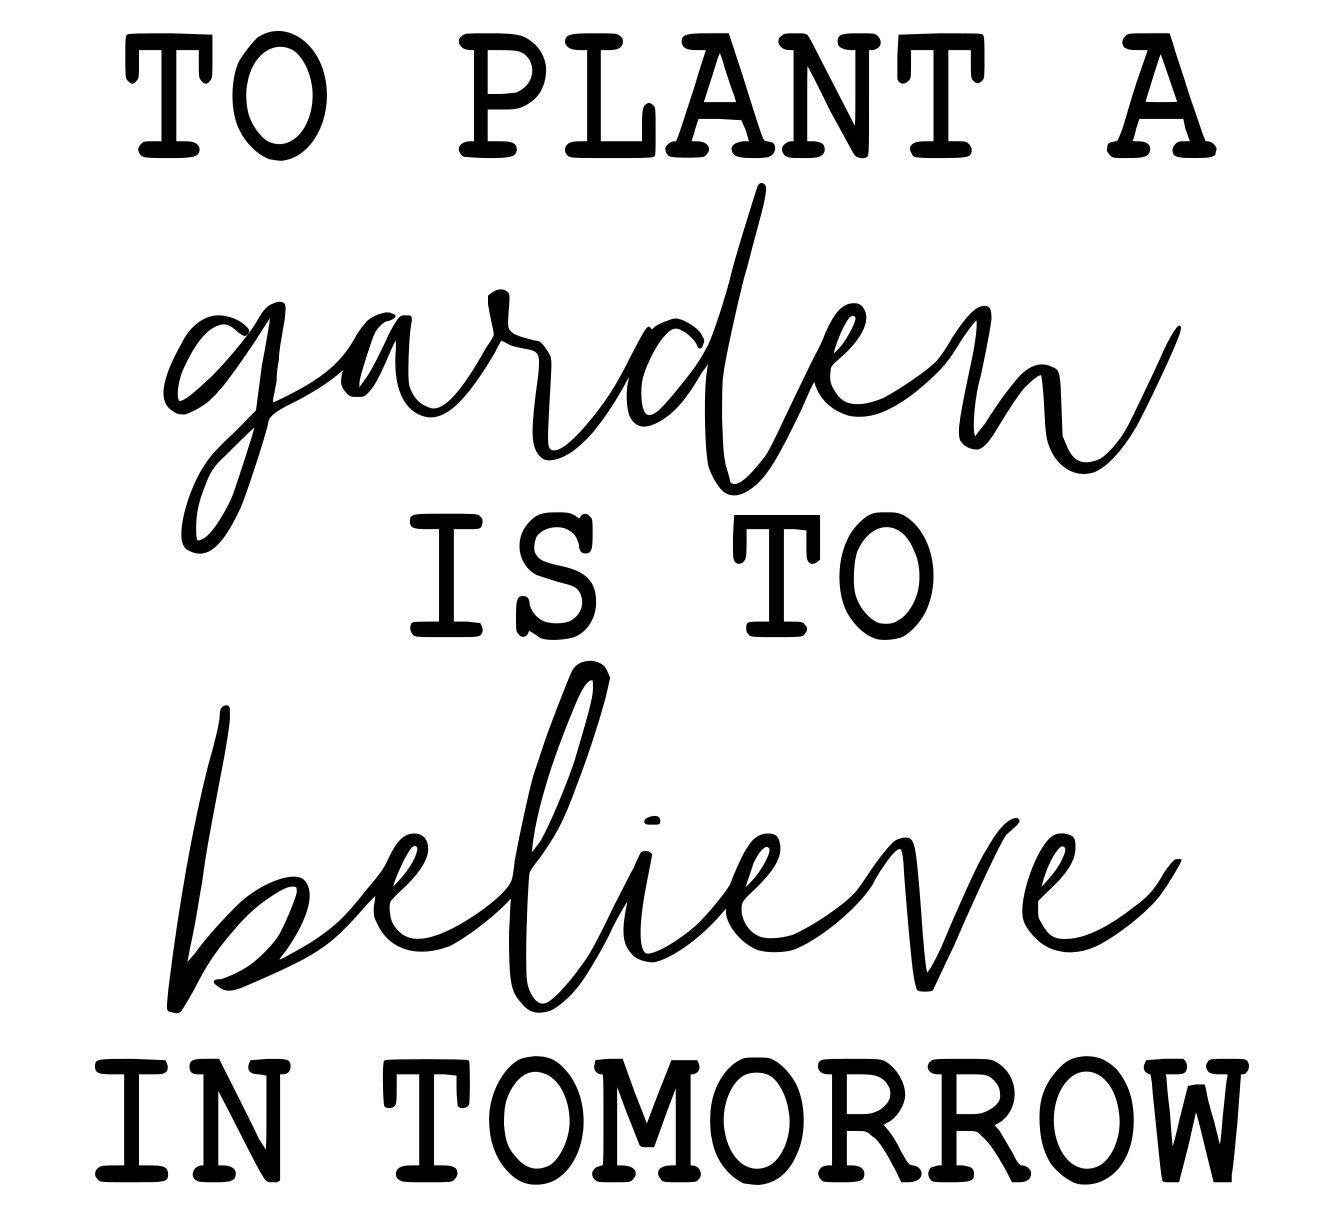 To plant a garden is to believe in tomor